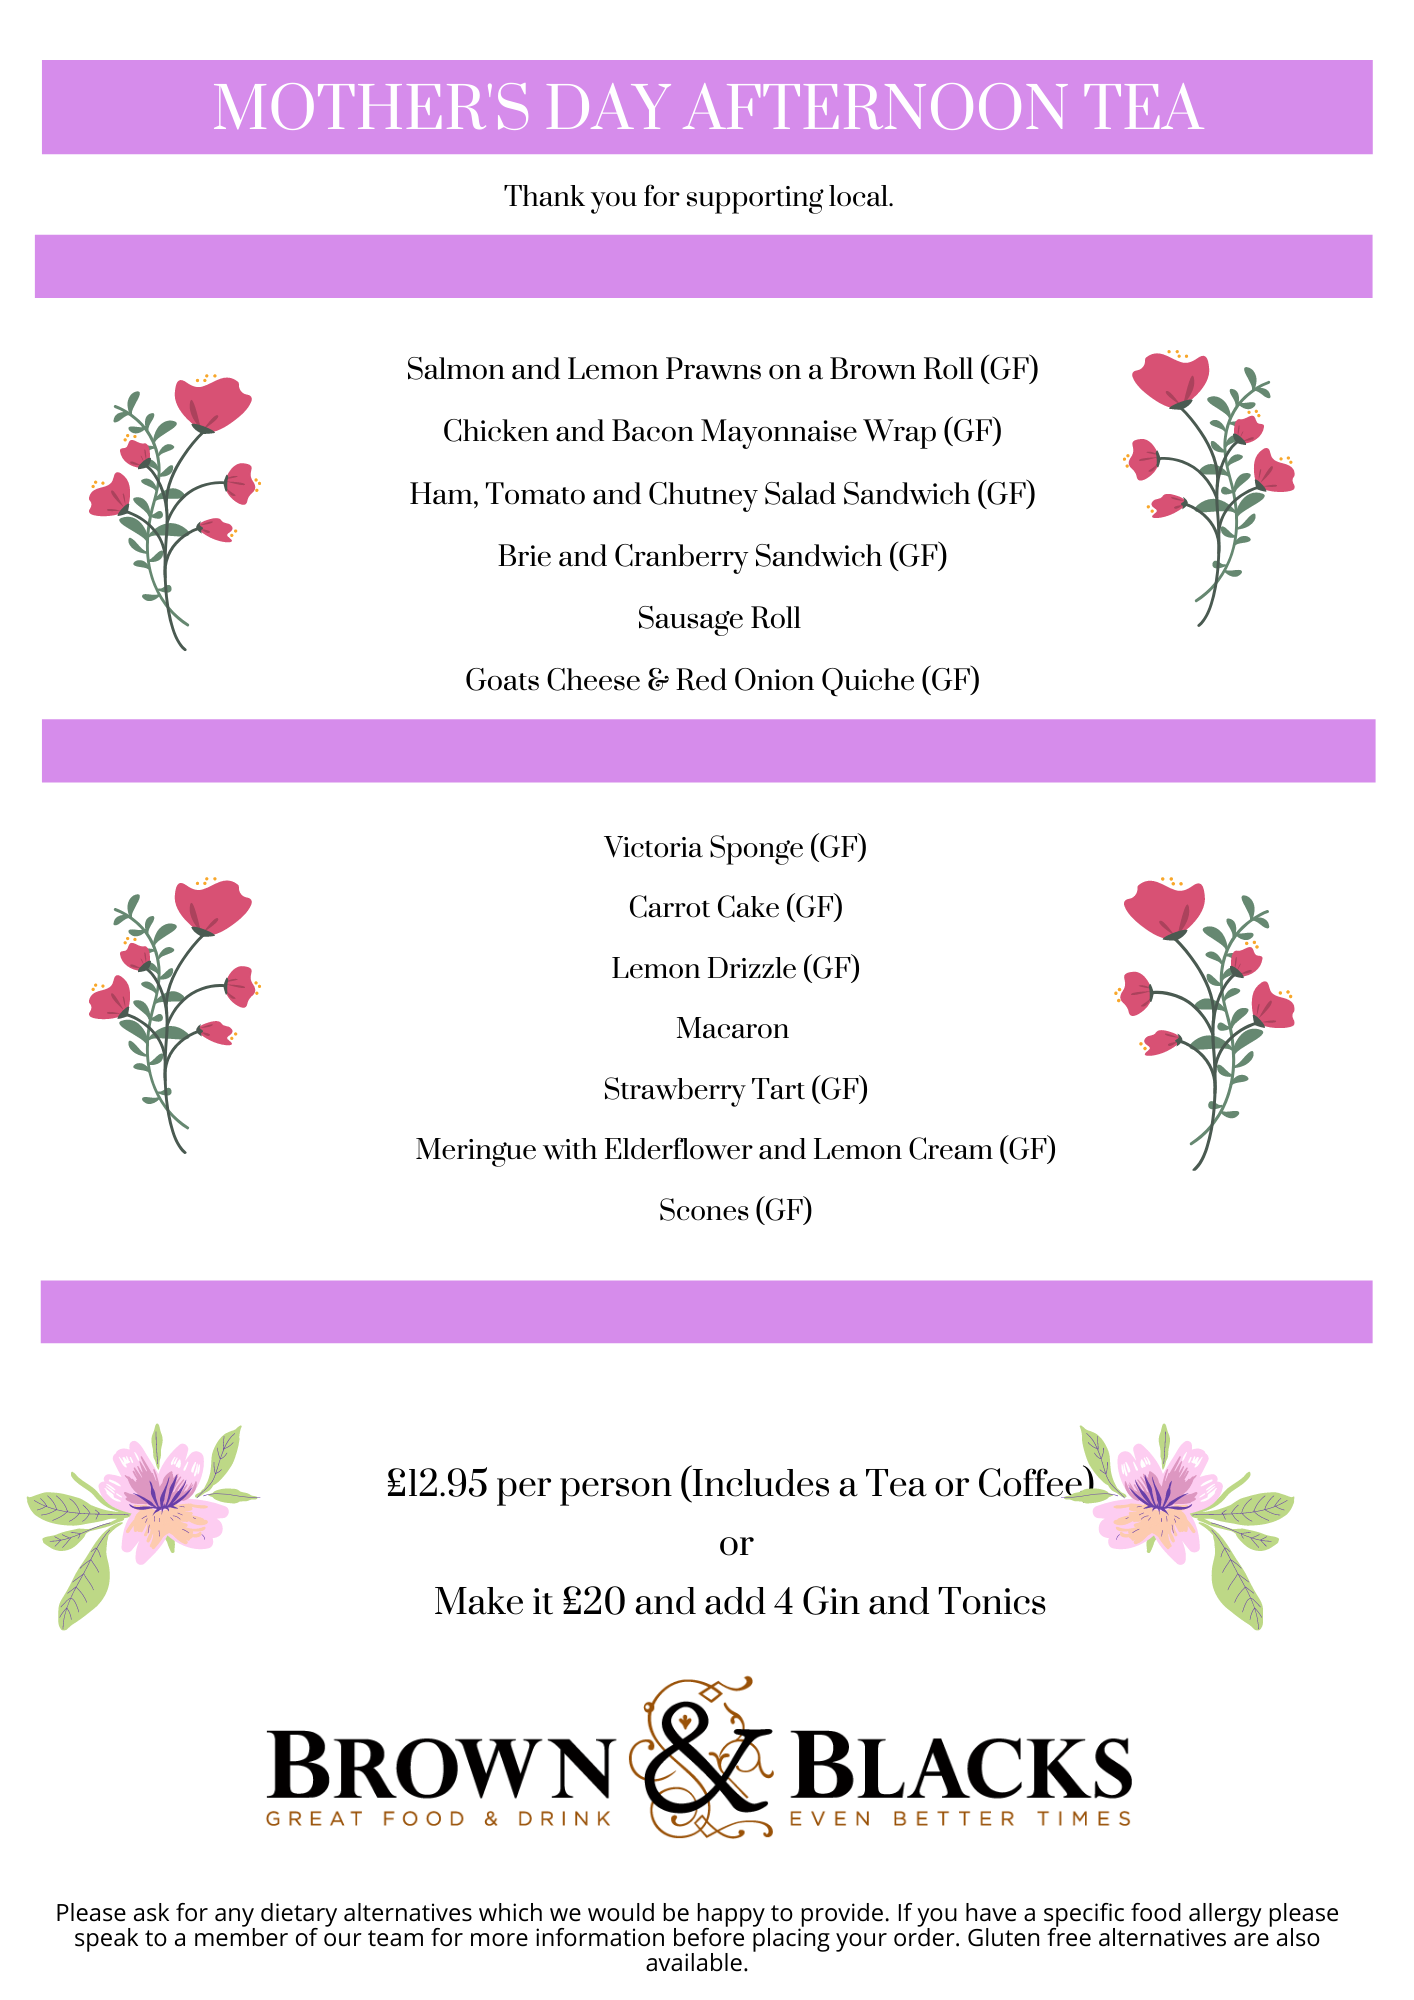 Mothers day afternoon tea website